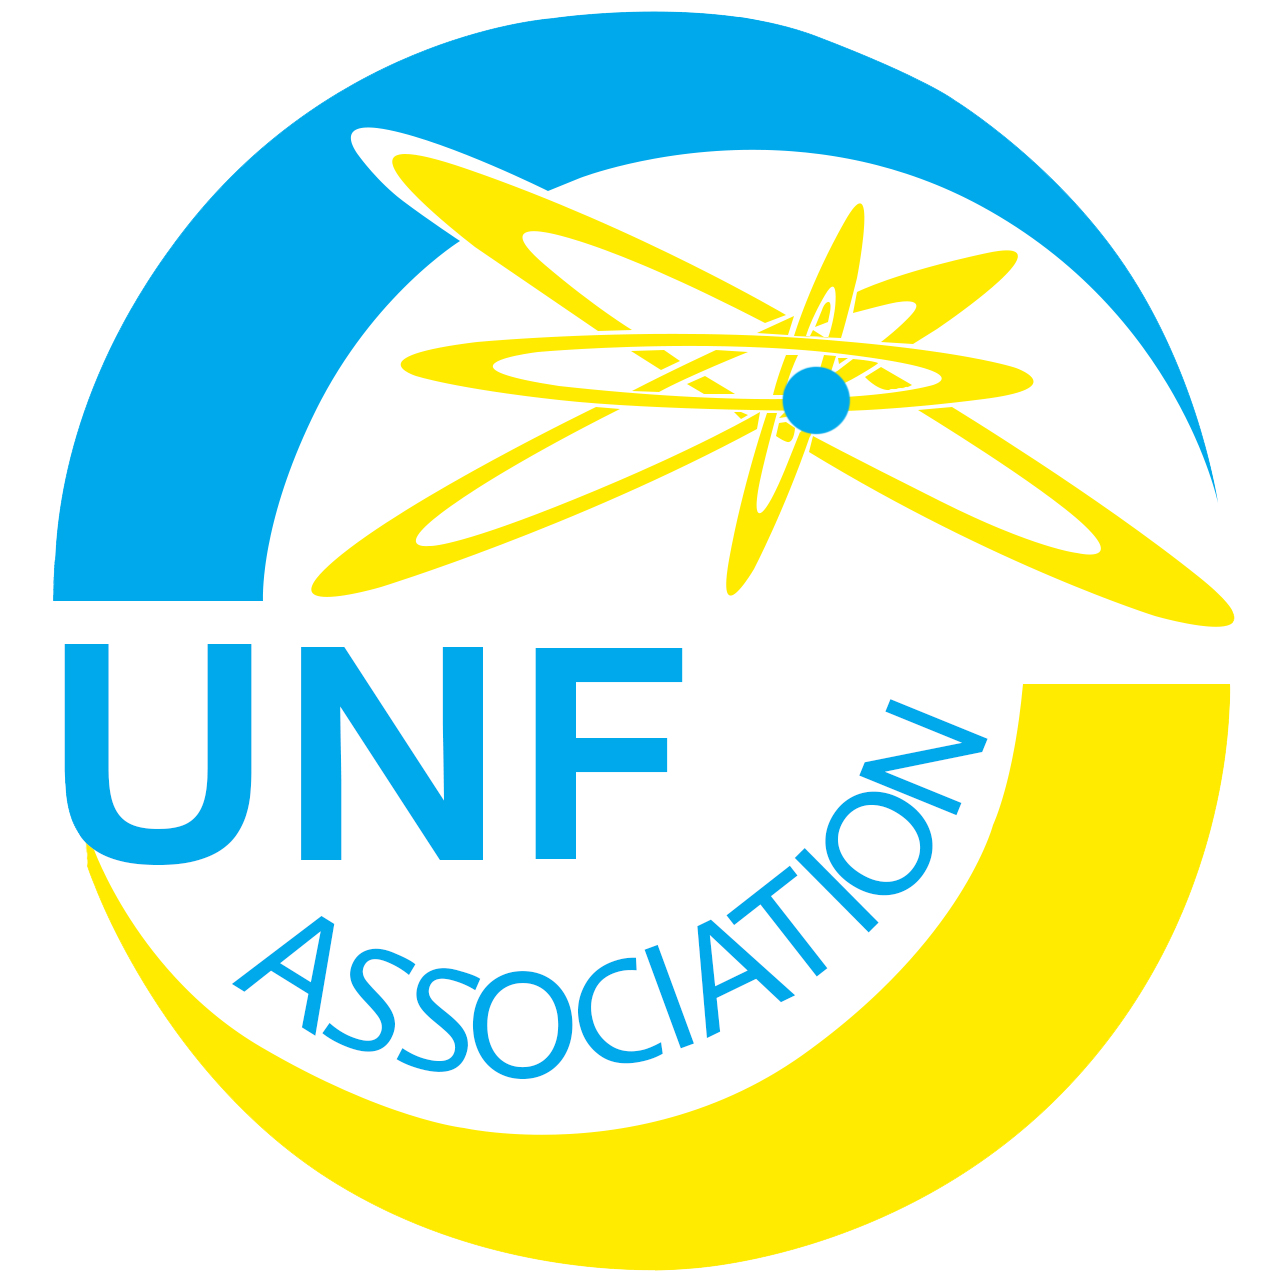 UKRAINIAN NUCLEAR FORUM ASSOCIATION